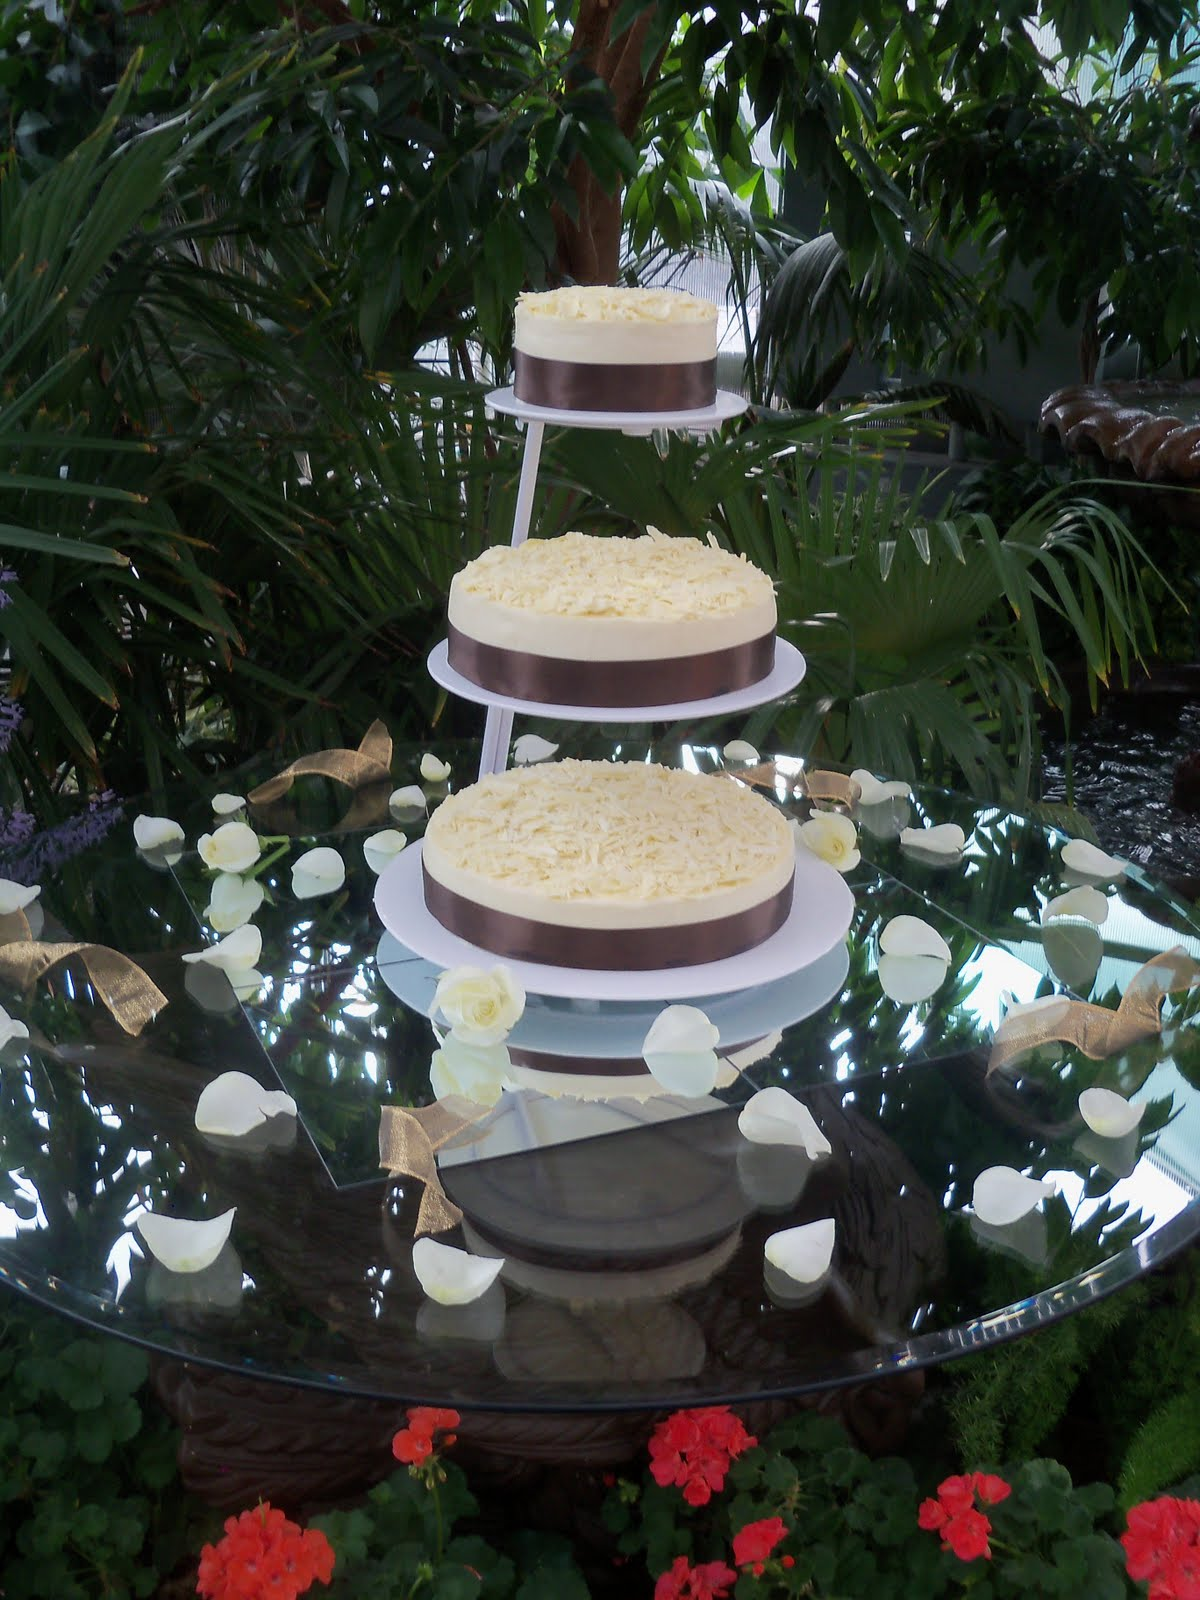 dede u0026 39 s cakes  cheesecake wedding cake